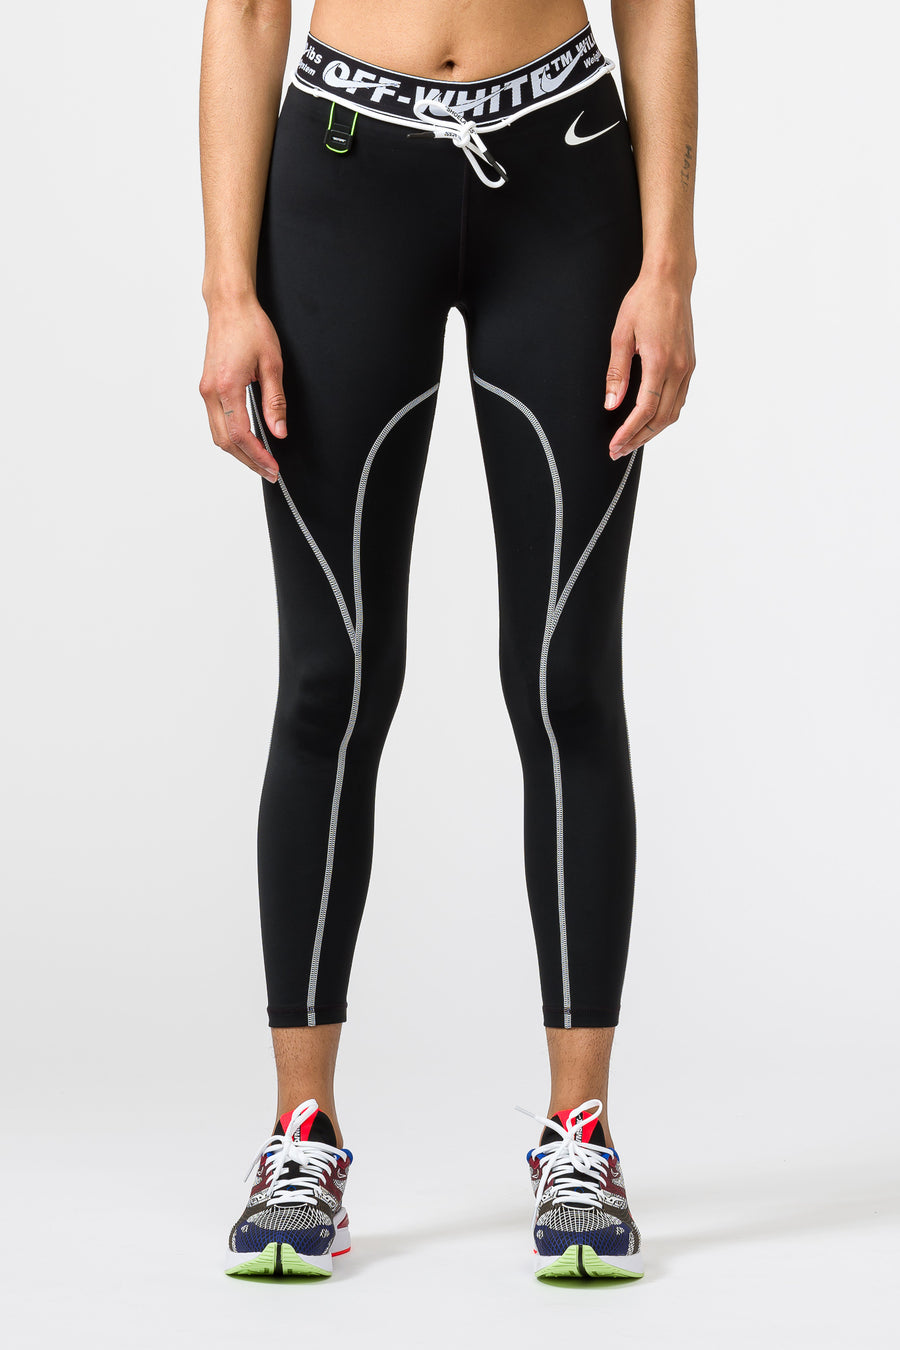 nike leggings 6-7